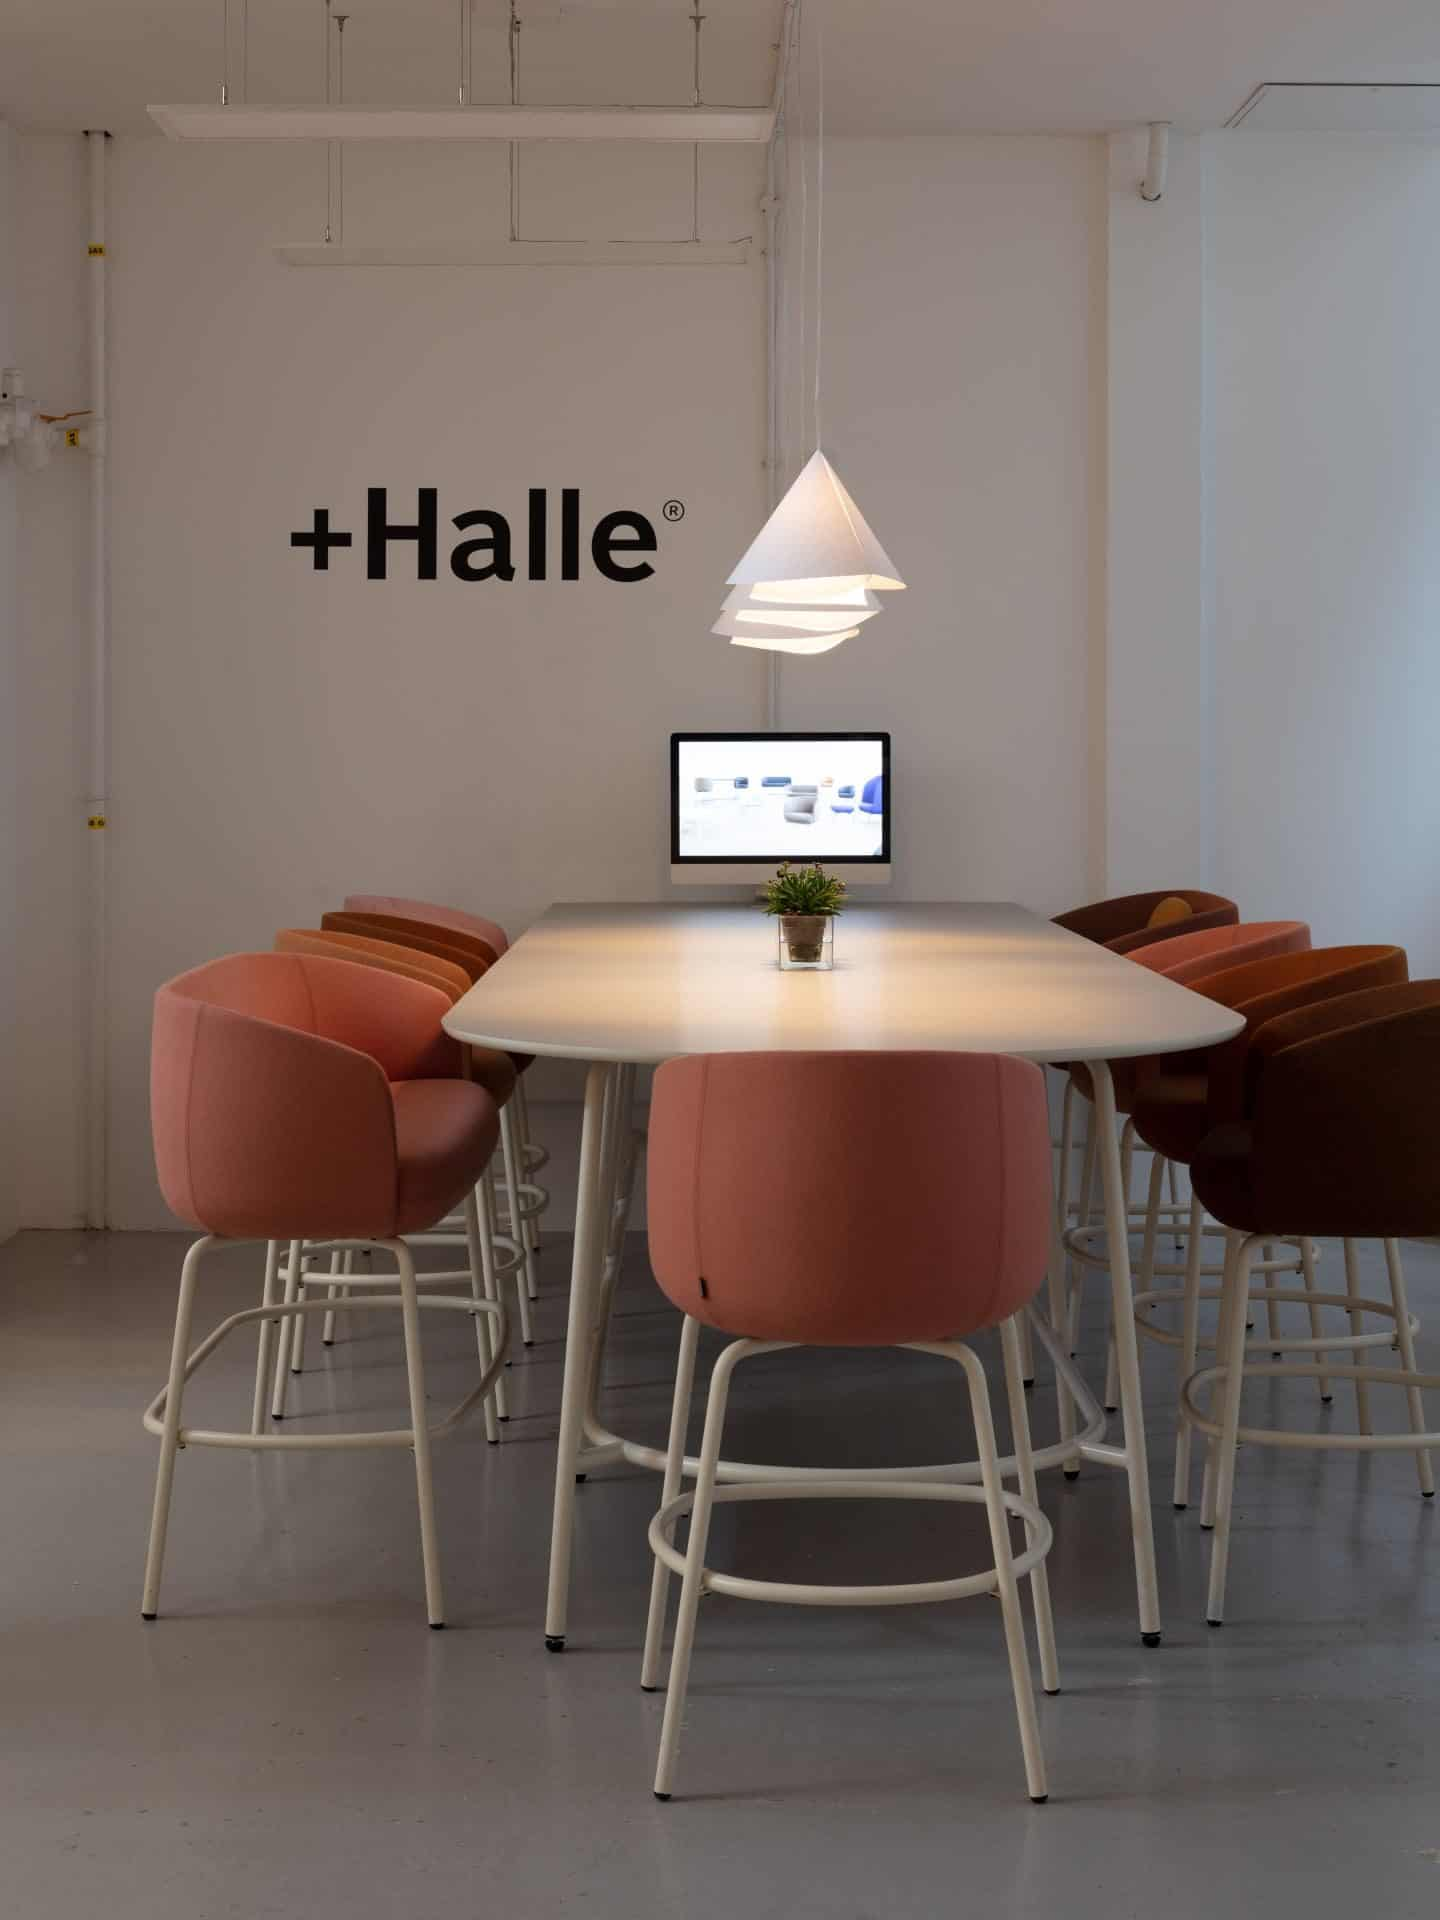 +Halle at Relay Represents at Clerkenwell Design Week 2019